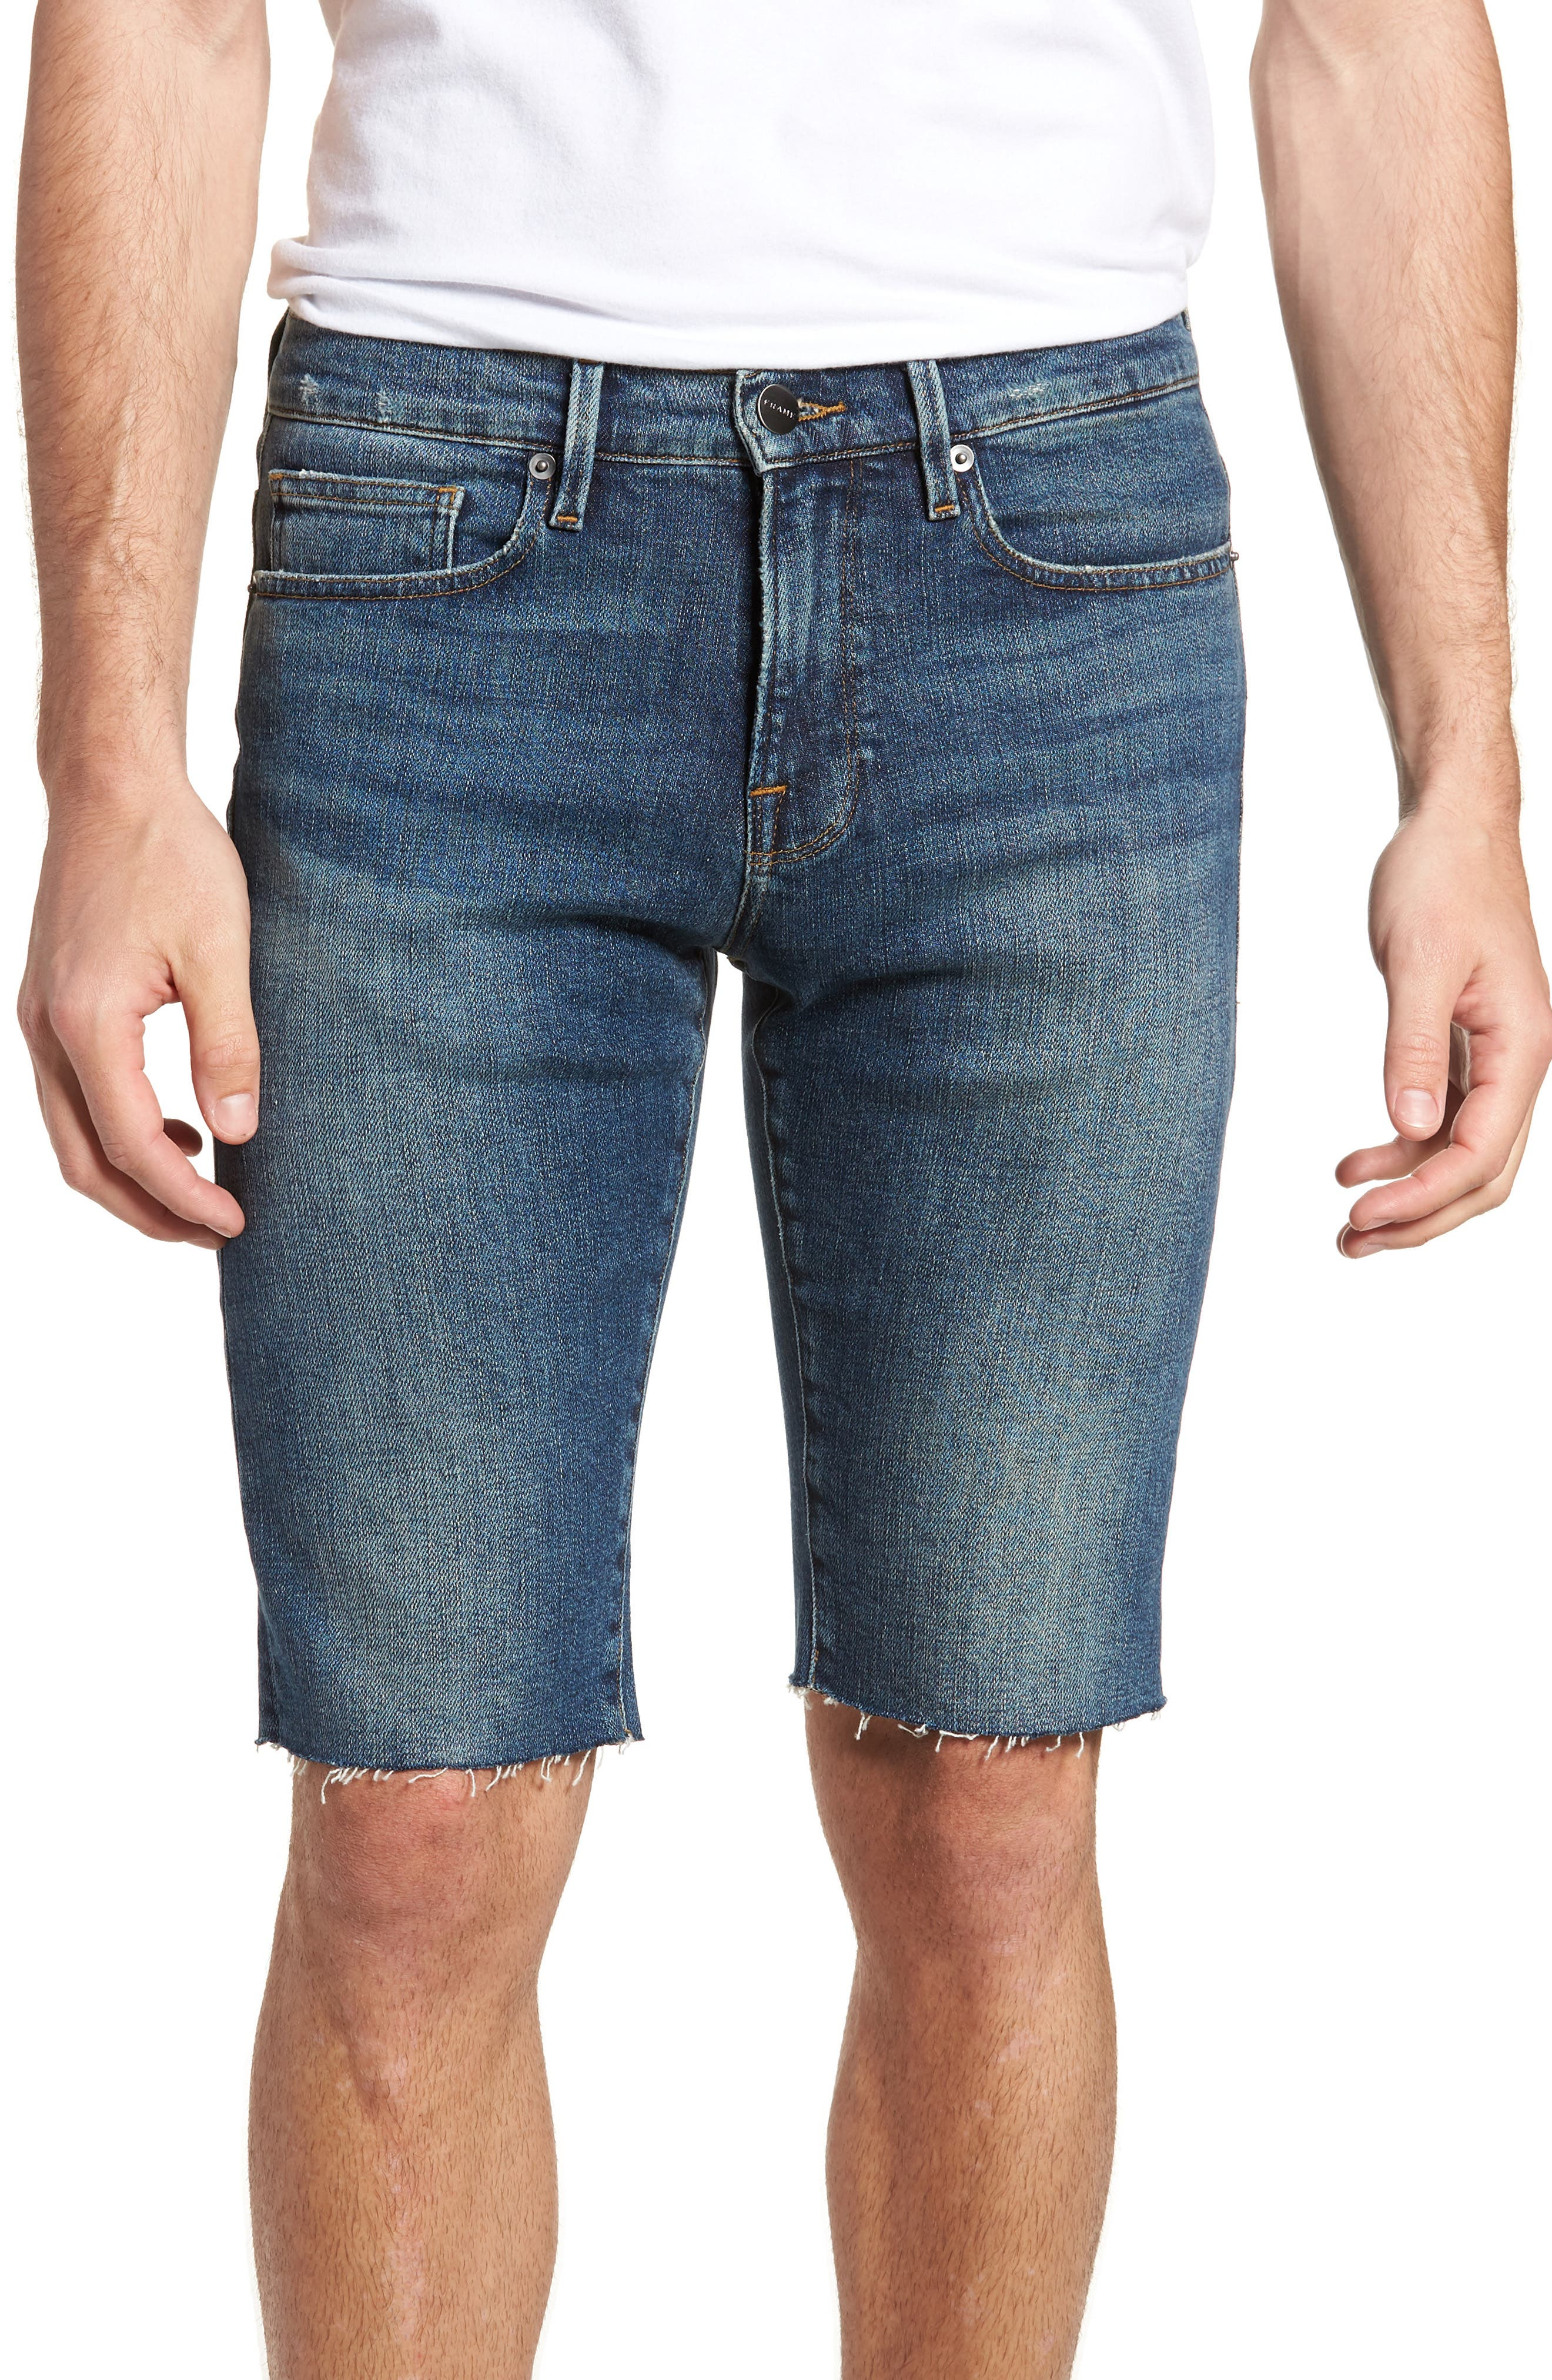 L'Homme Cutoff Shorts,                         Main,                         color, KIRBY